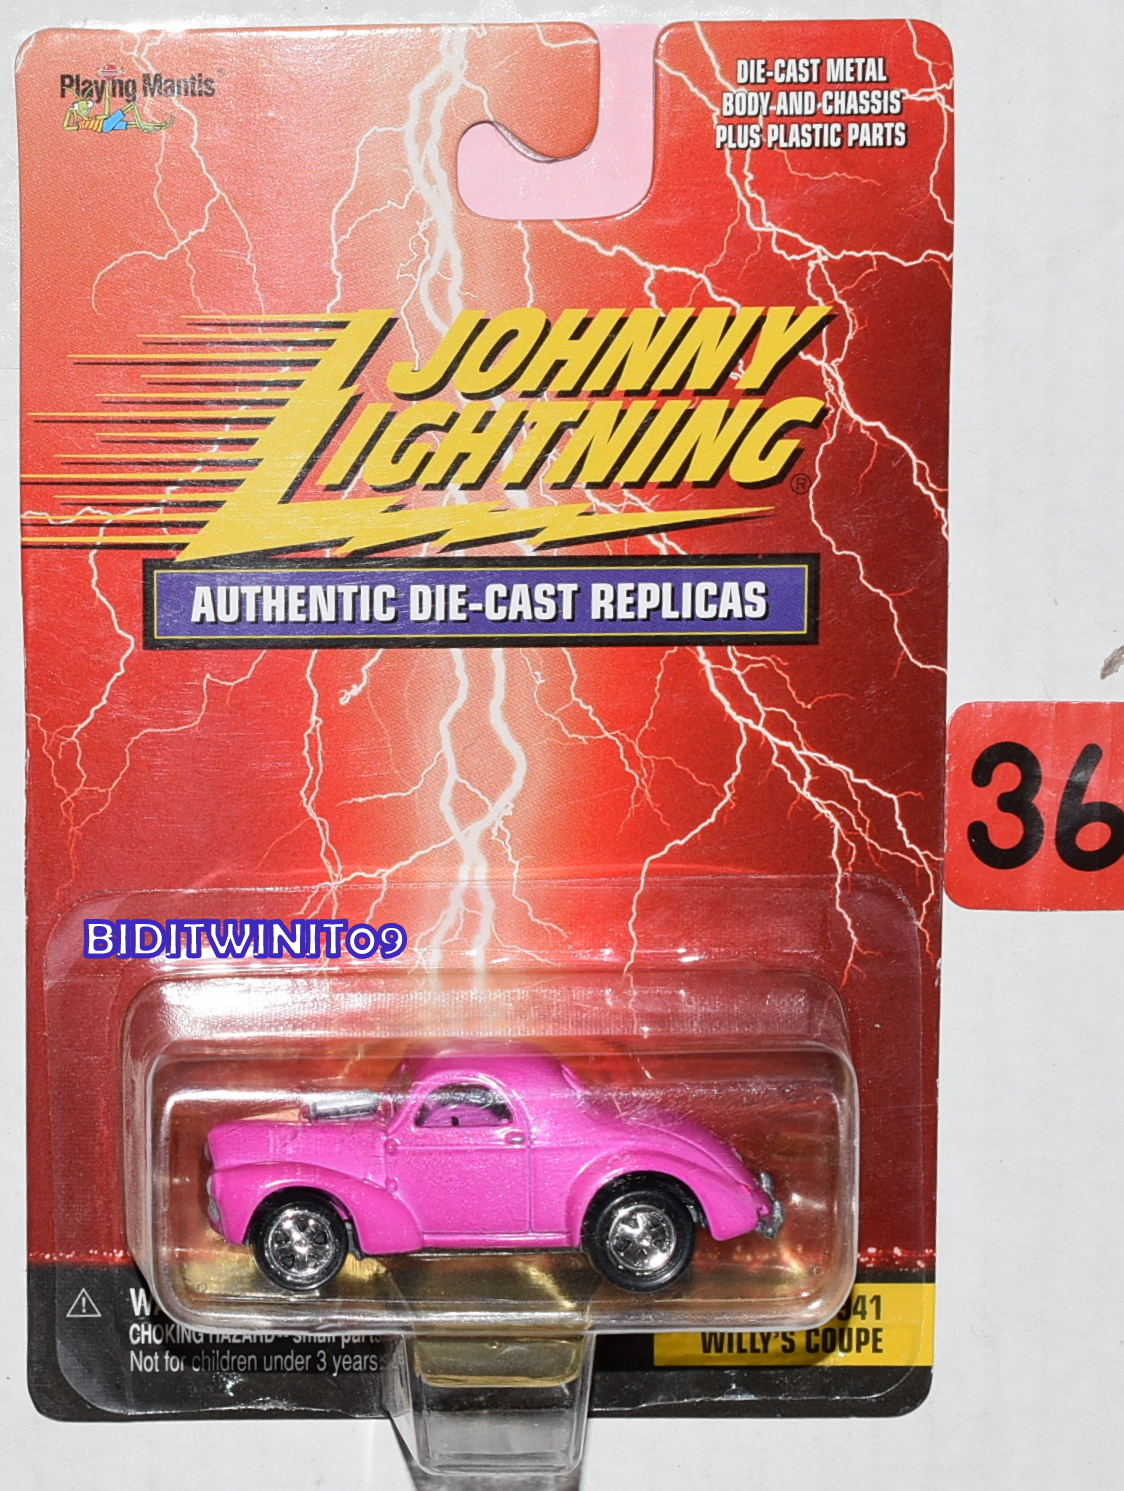 JOHNNY LIGHTNING AUTHENTIC DIE CAST REPLICAS 1941 WILLY'S COUPE PINK